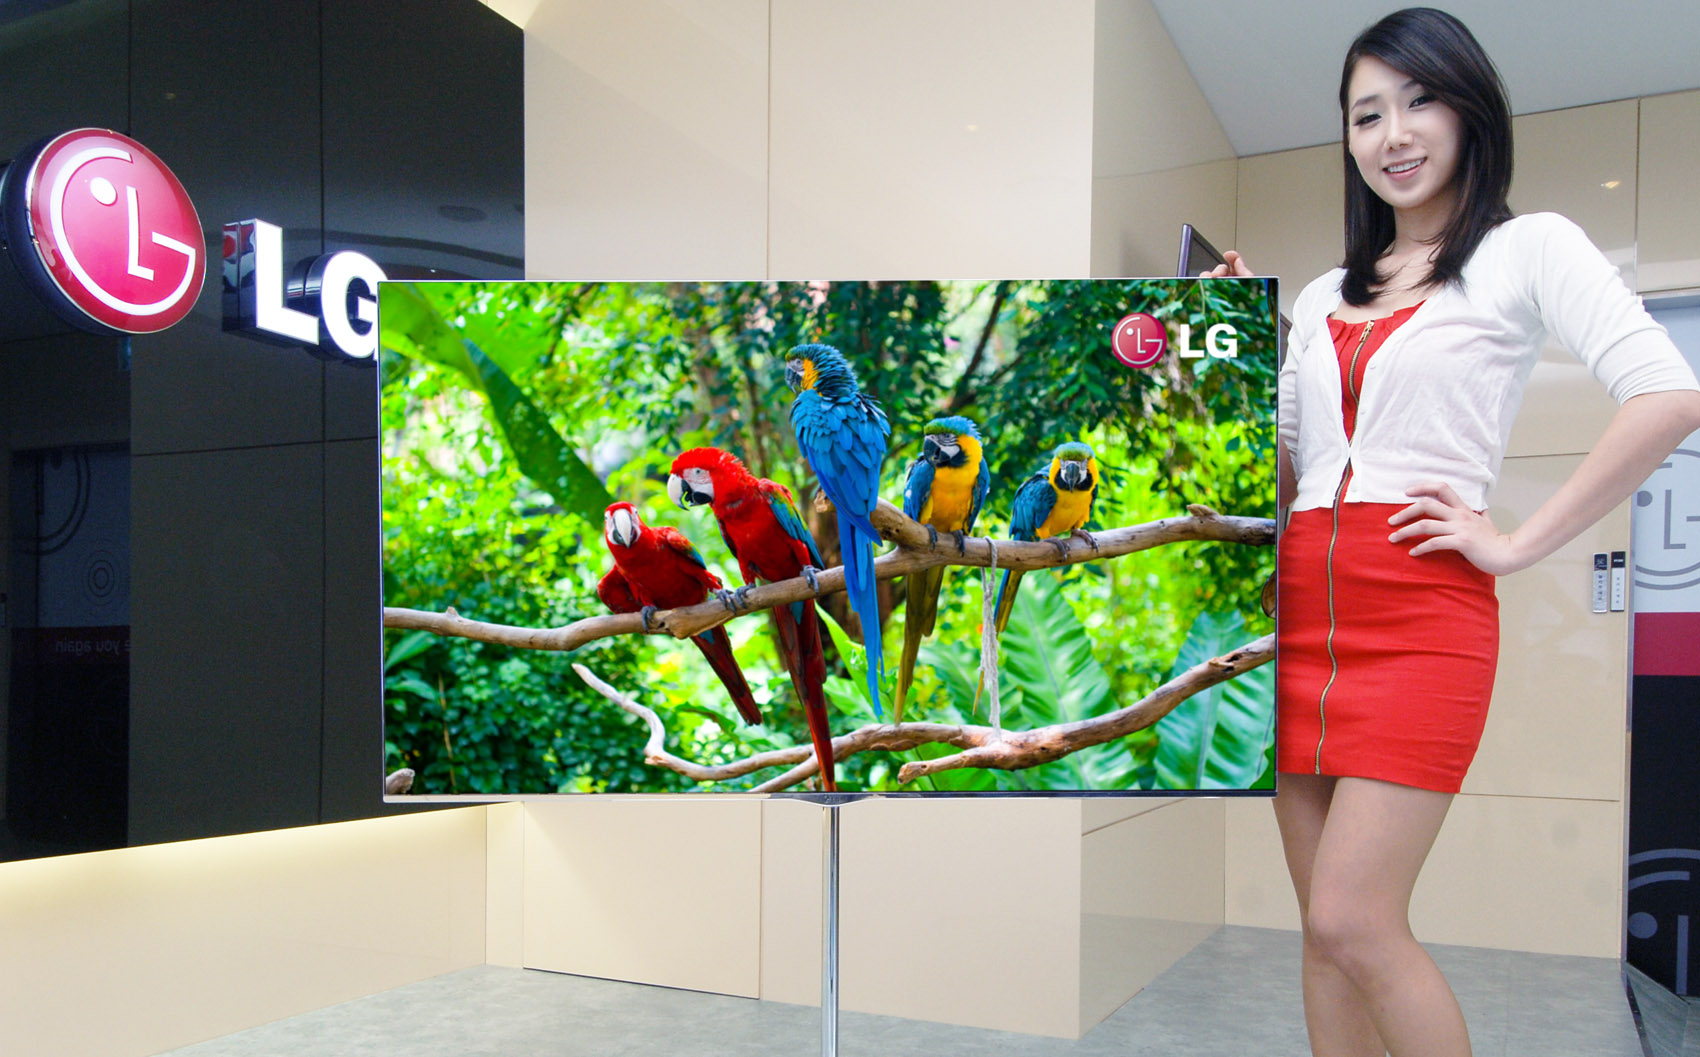 New LG OLED TV - 55 inches launched in Korea